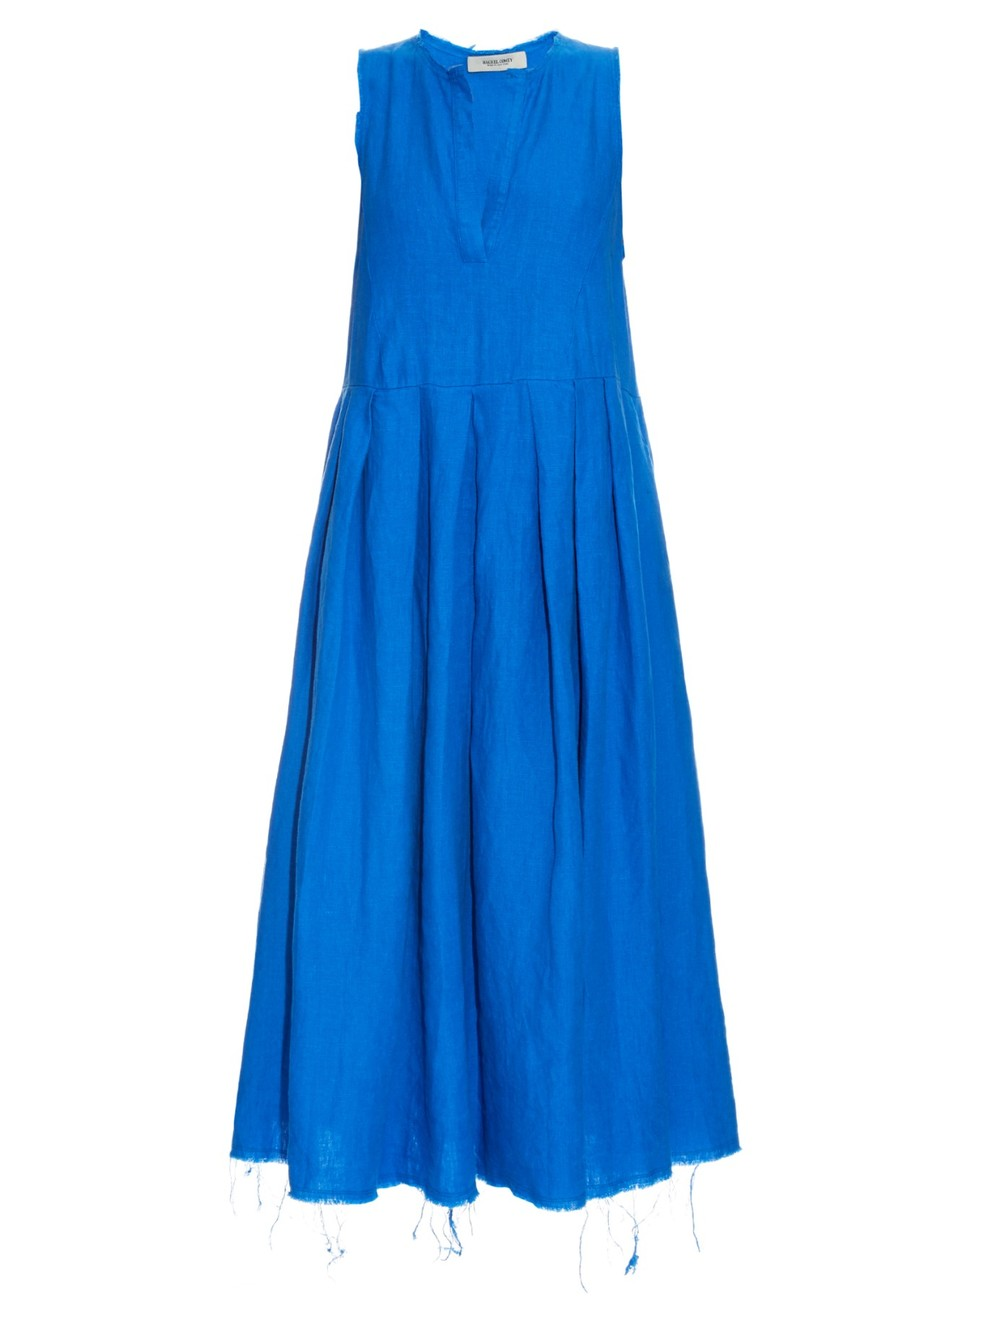 Rachel Comey: Serano Pleated Linen Dress was $552, now $386